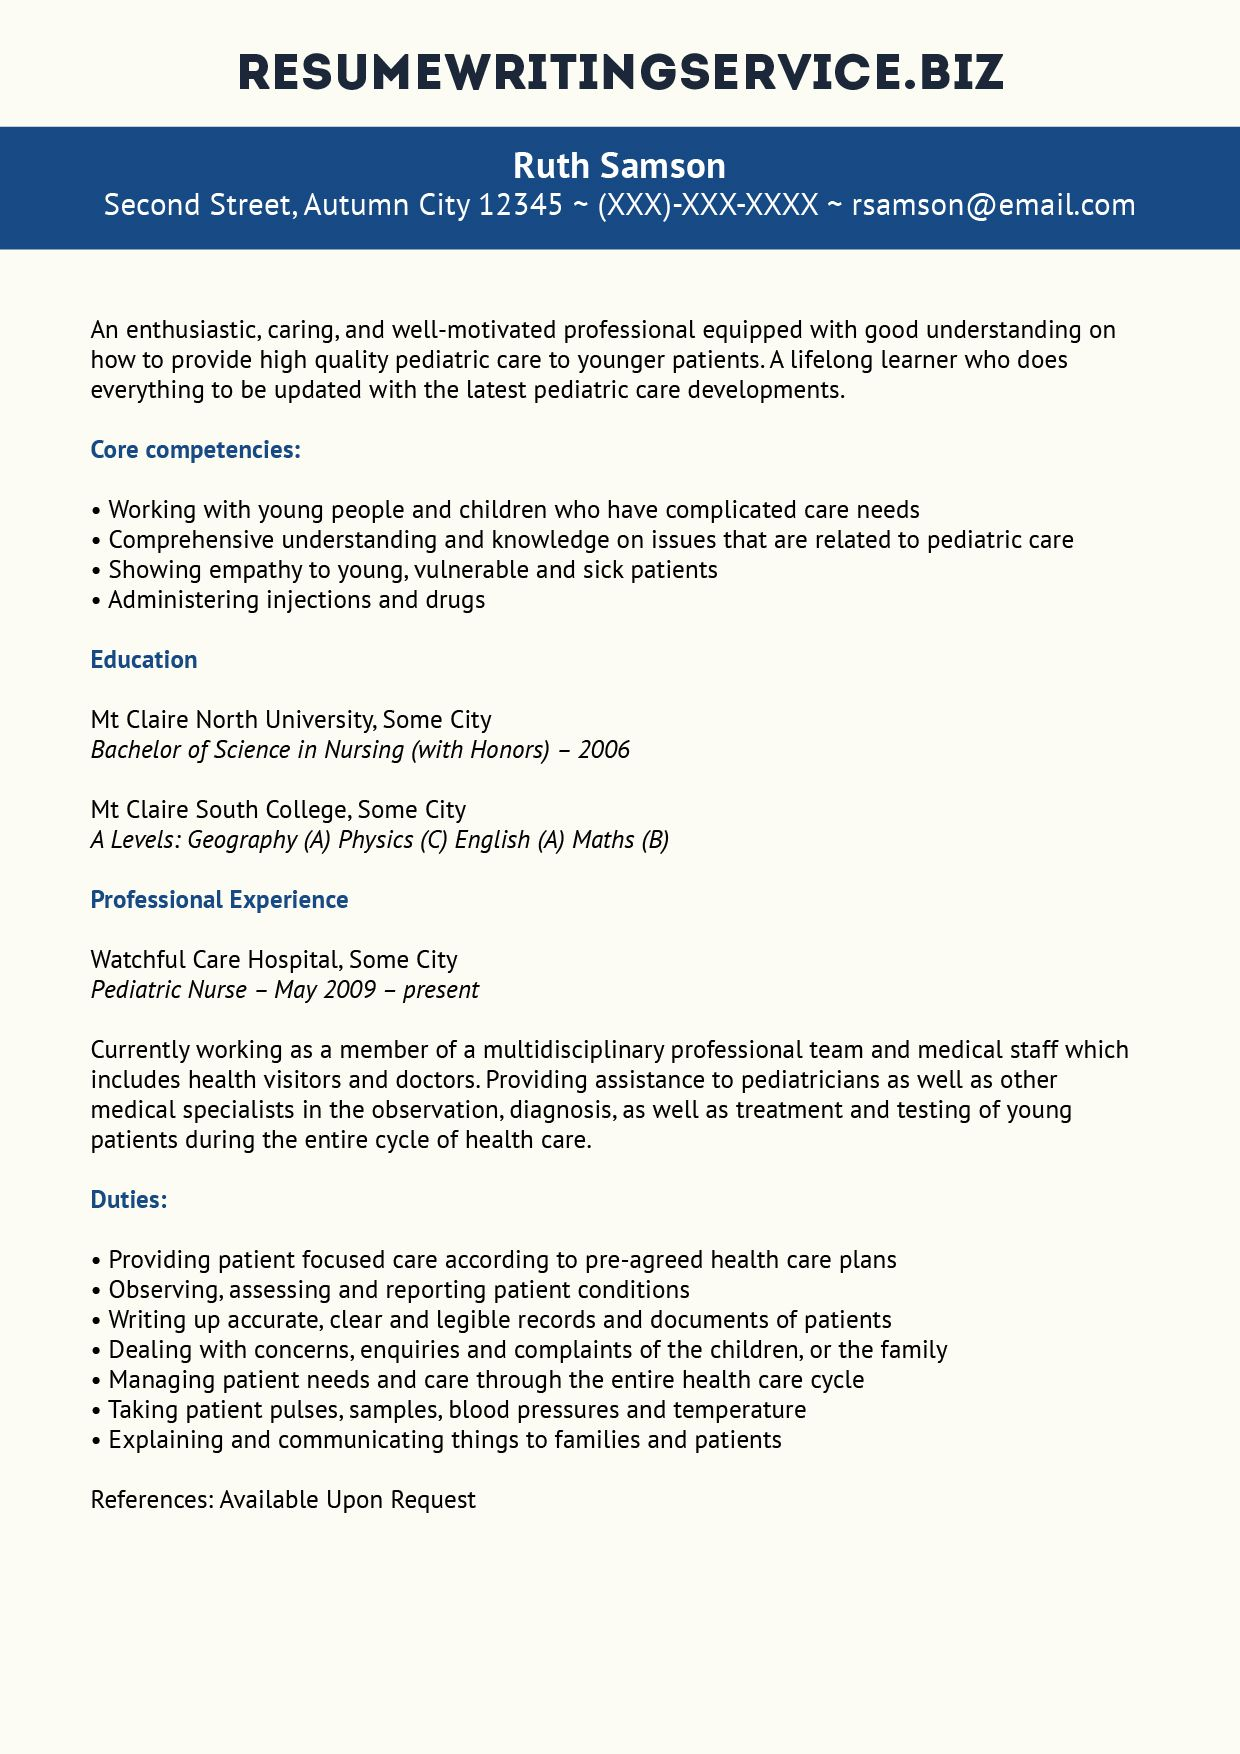 Pediatric Nurse Resume Sample Student StuffCareer Pinterest